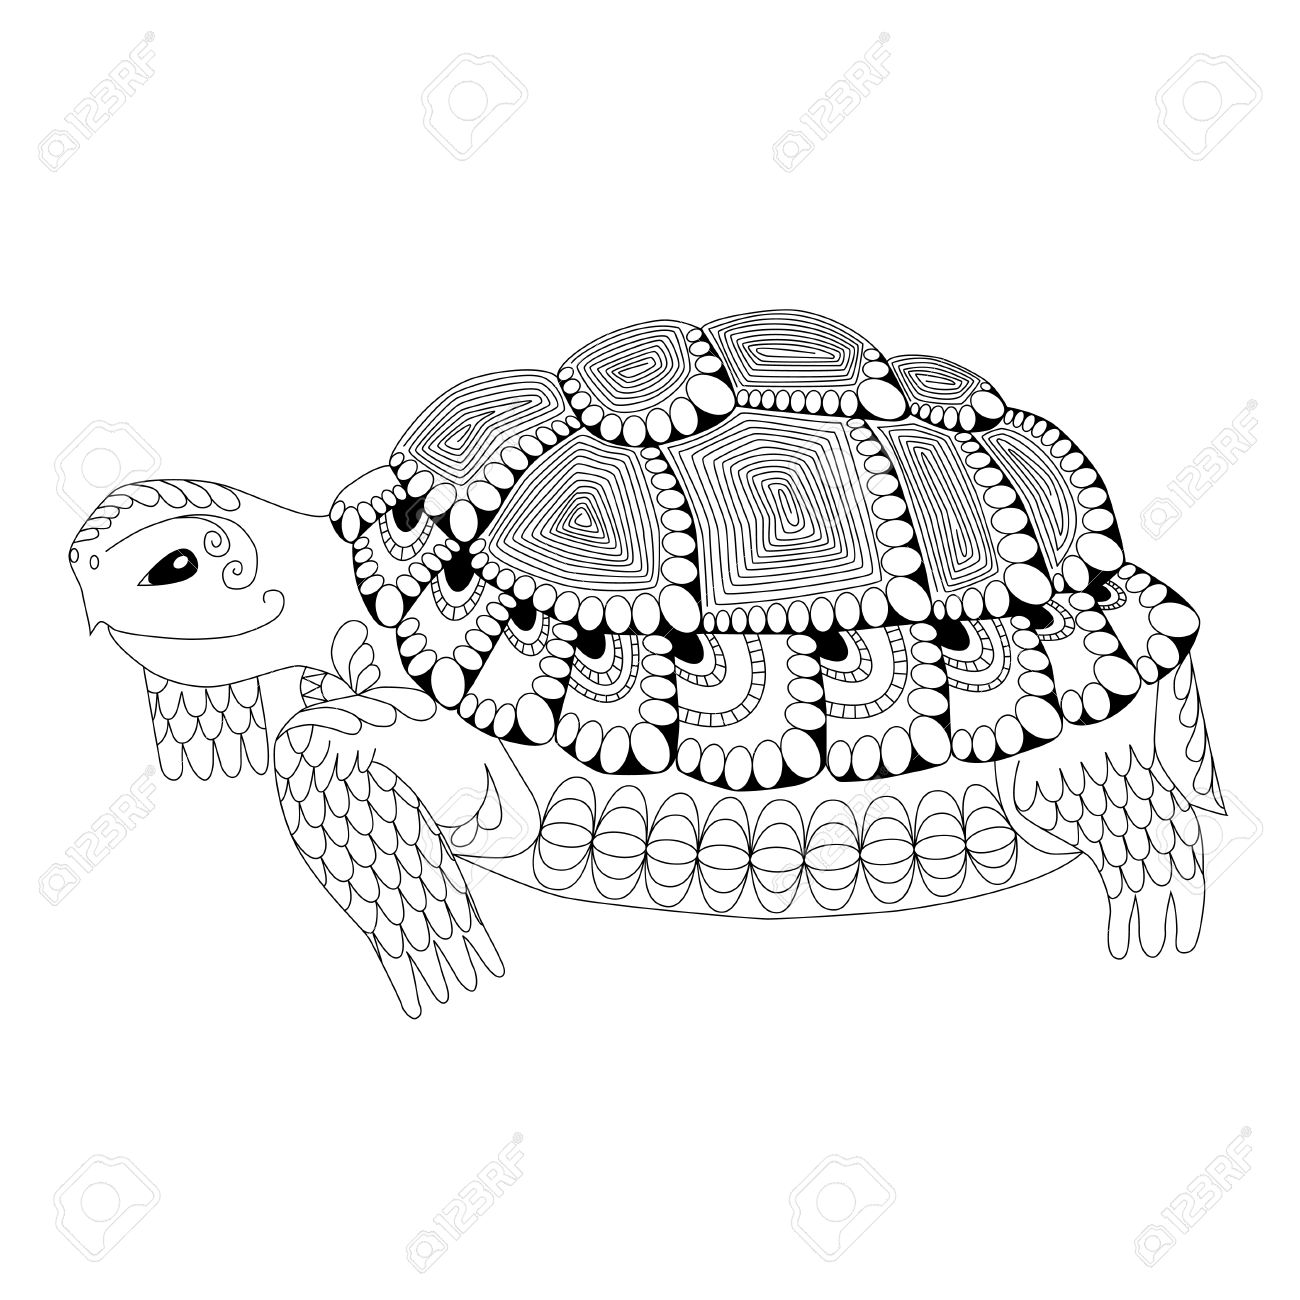 1300x1300 Totem Animal. Drawing Turtle For Coloring Page, Shirt Design